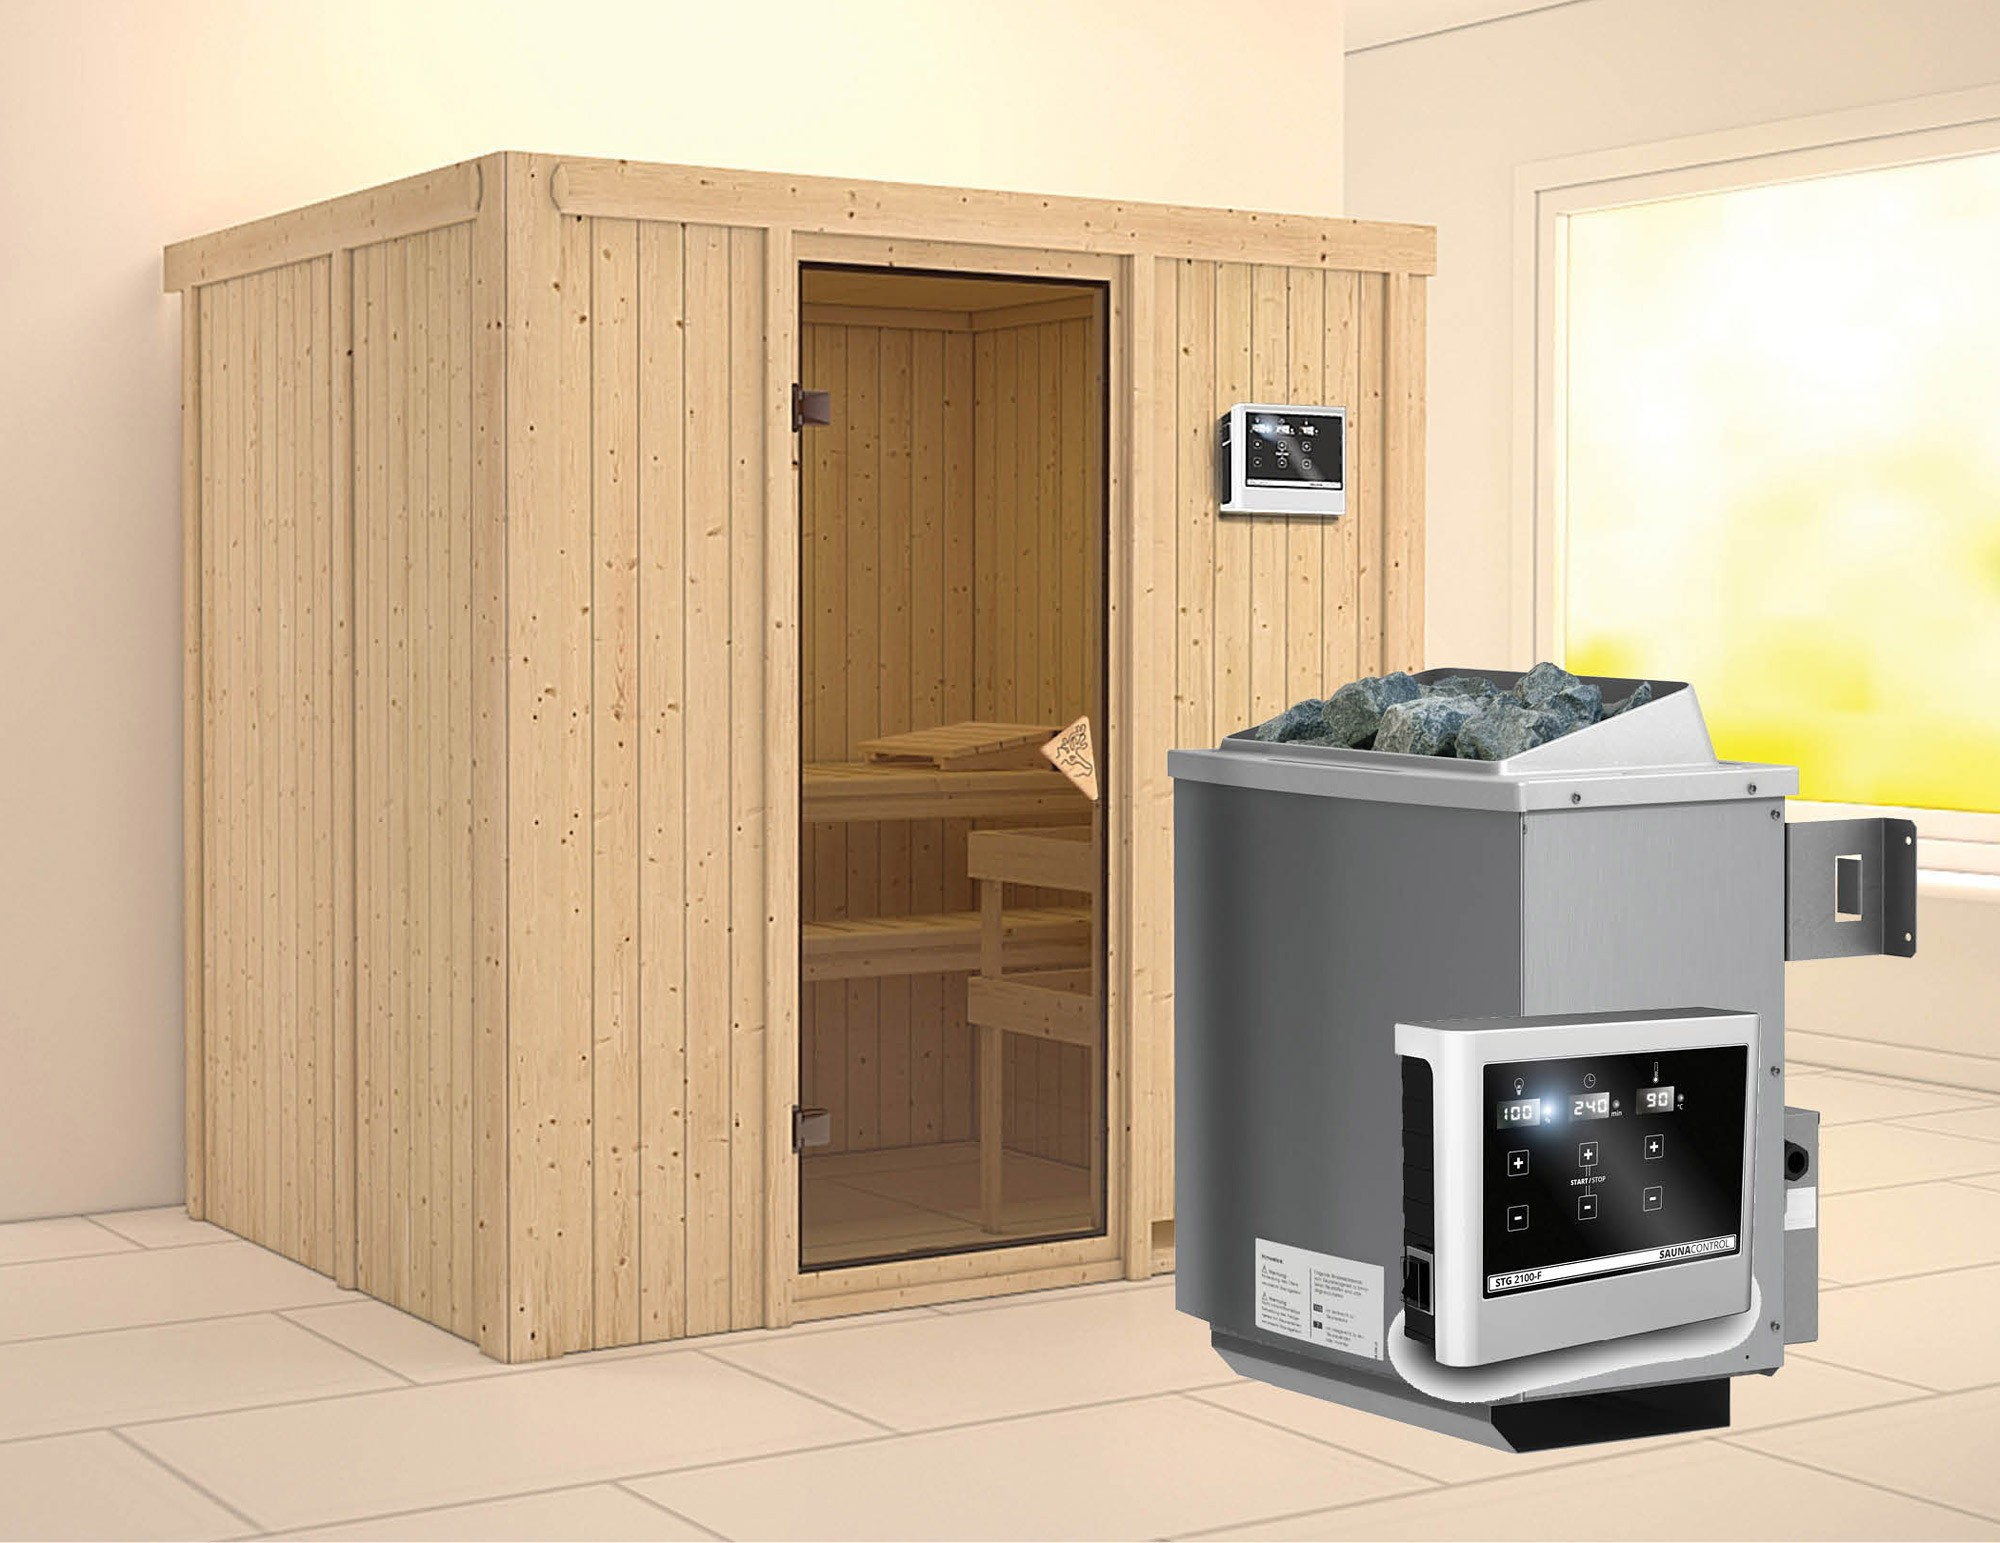 karibu sauna bodin 68mm mit ofen 9kw extern classic t r bild 1. Black Bedroom Furniture Sets. Home Design Ideas